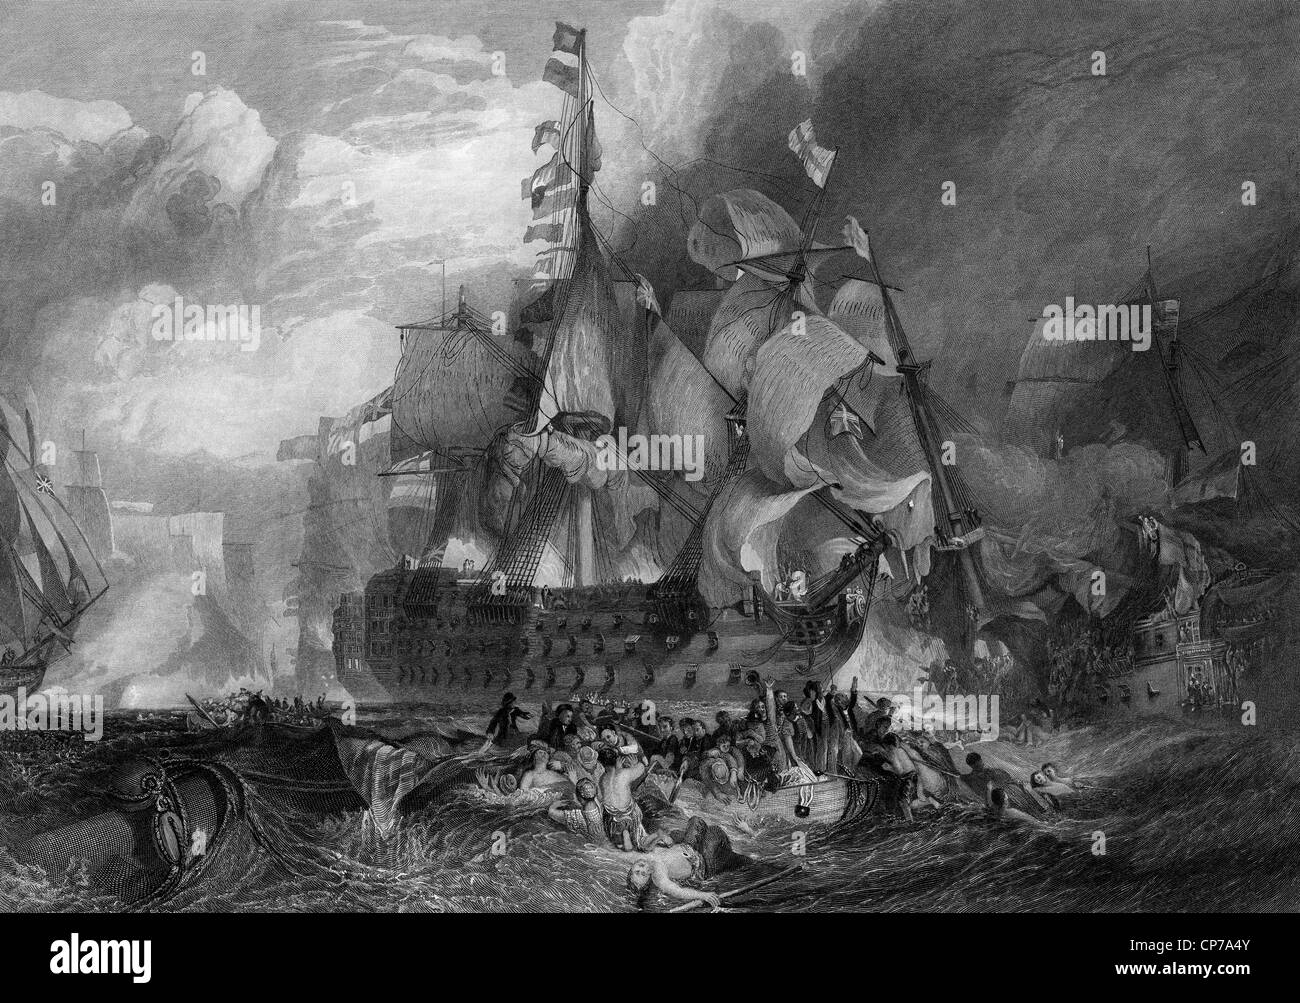 Black and white engraving of the Battle of Trafalgar. Engraving by William Miller after J M W Turner in 1875. - Stock Image